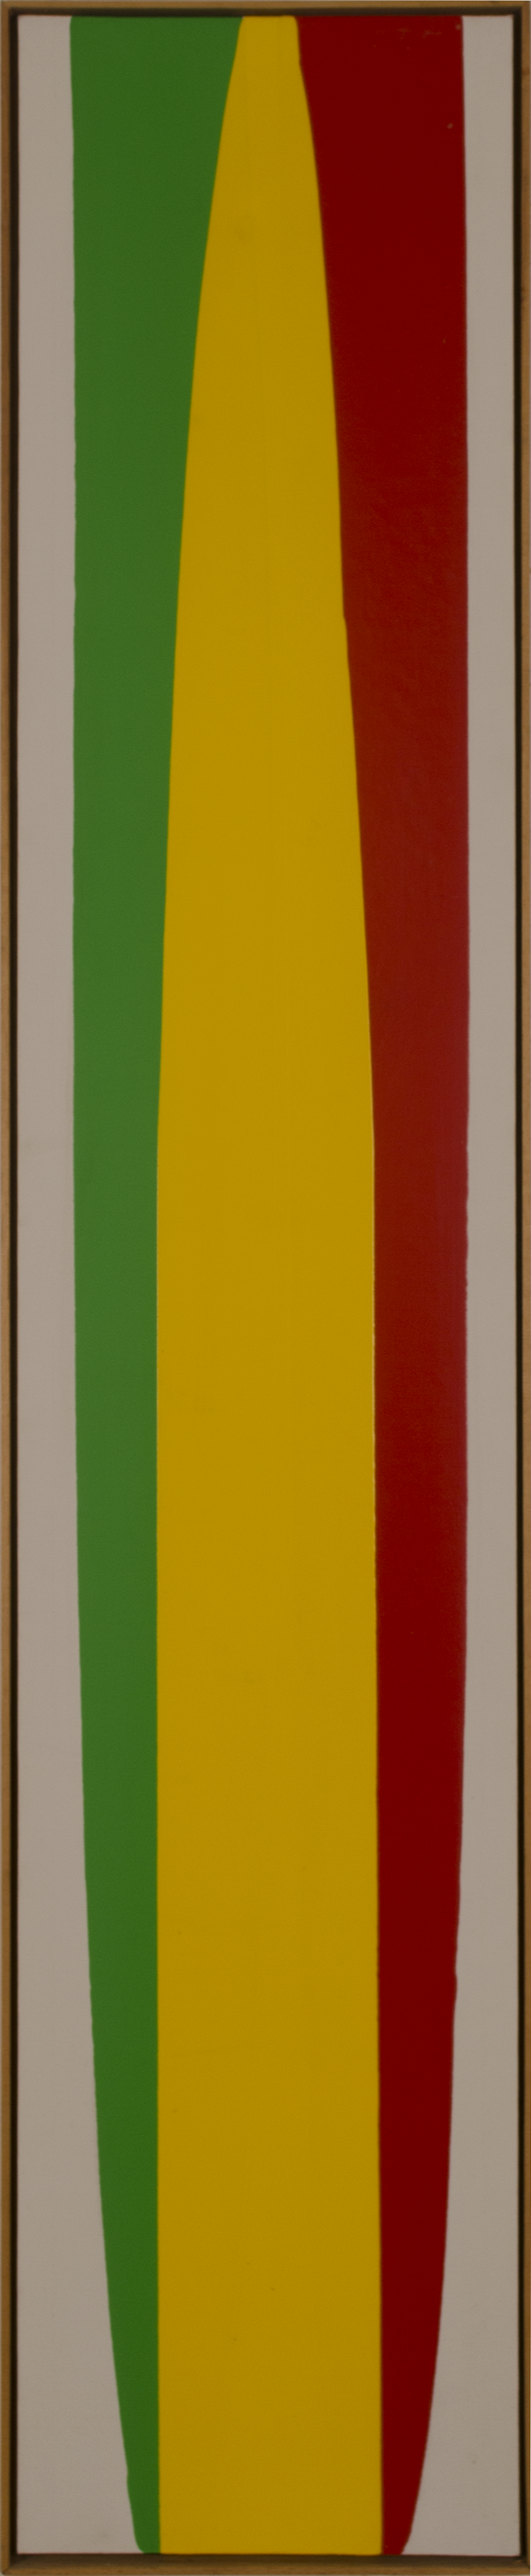 GREEN YELLOW RED 1974 © acrylic paint on primed canvas